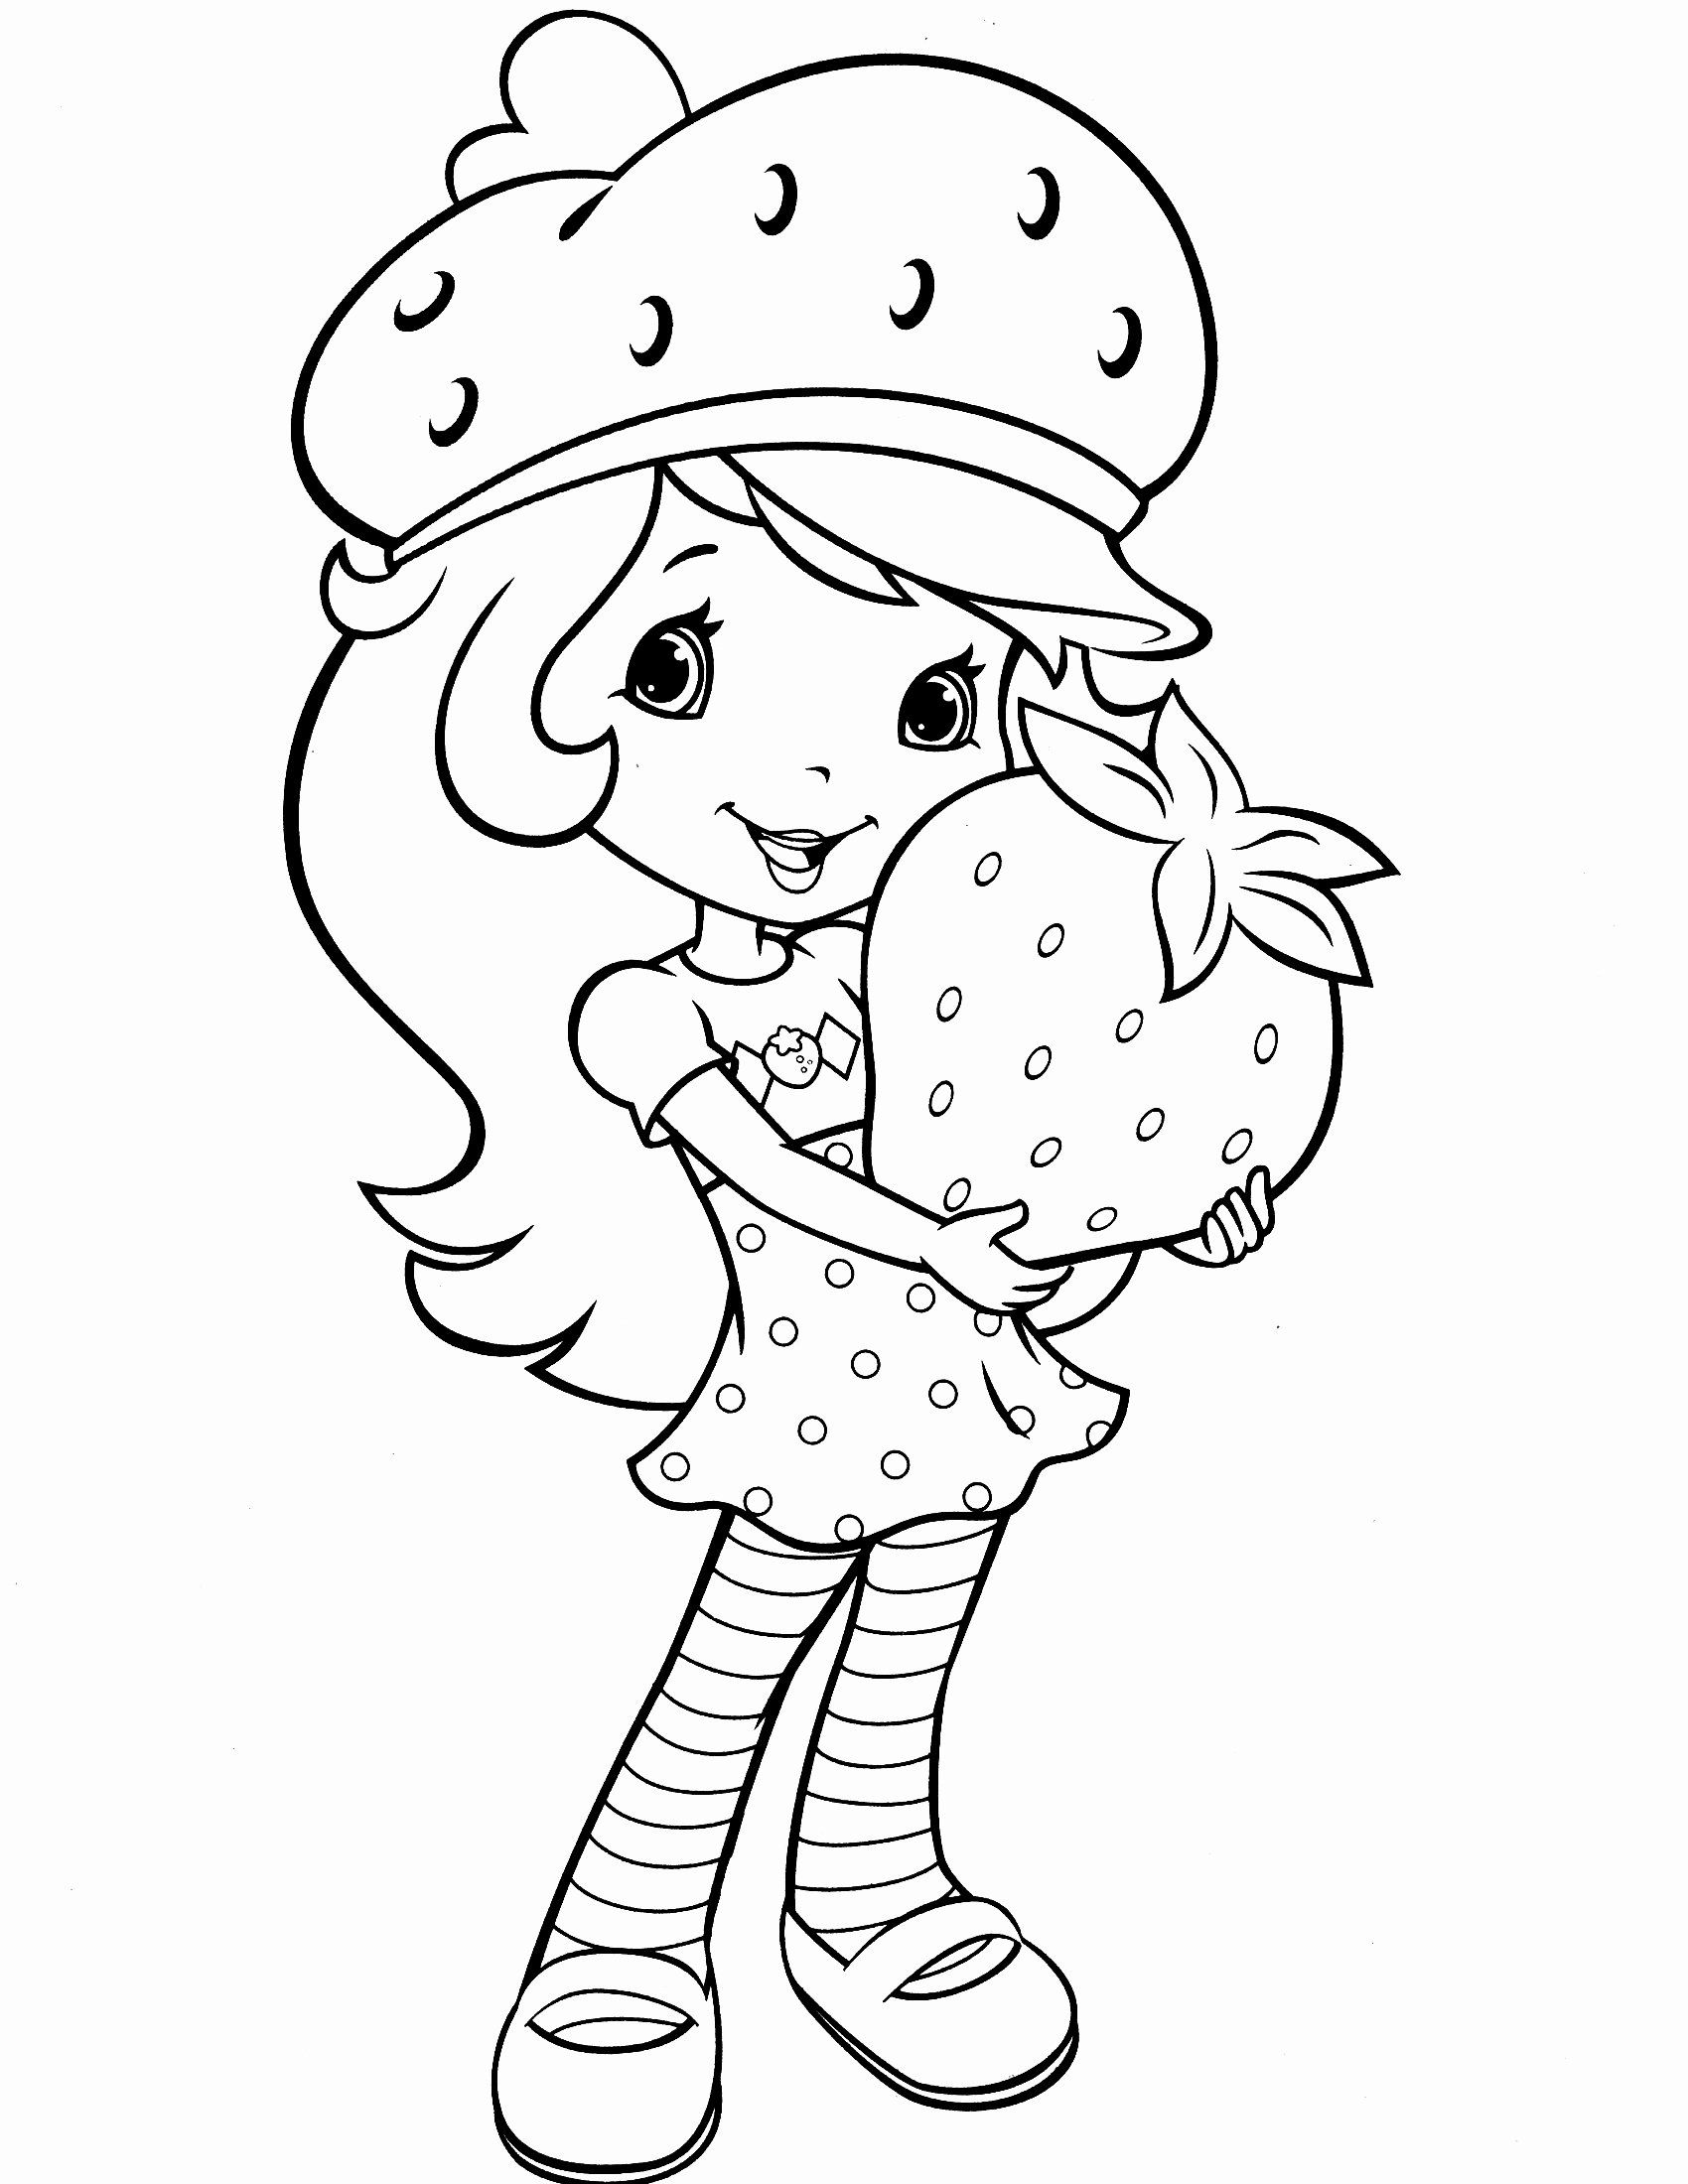 Strawberry Shortcake Coloring Book Elegant Strawberry Coloring Pages Best Col In 2020 Strawberry Shortcake Coloring Pages Cartoon Coloring Pages Unicorn Coloring Pages